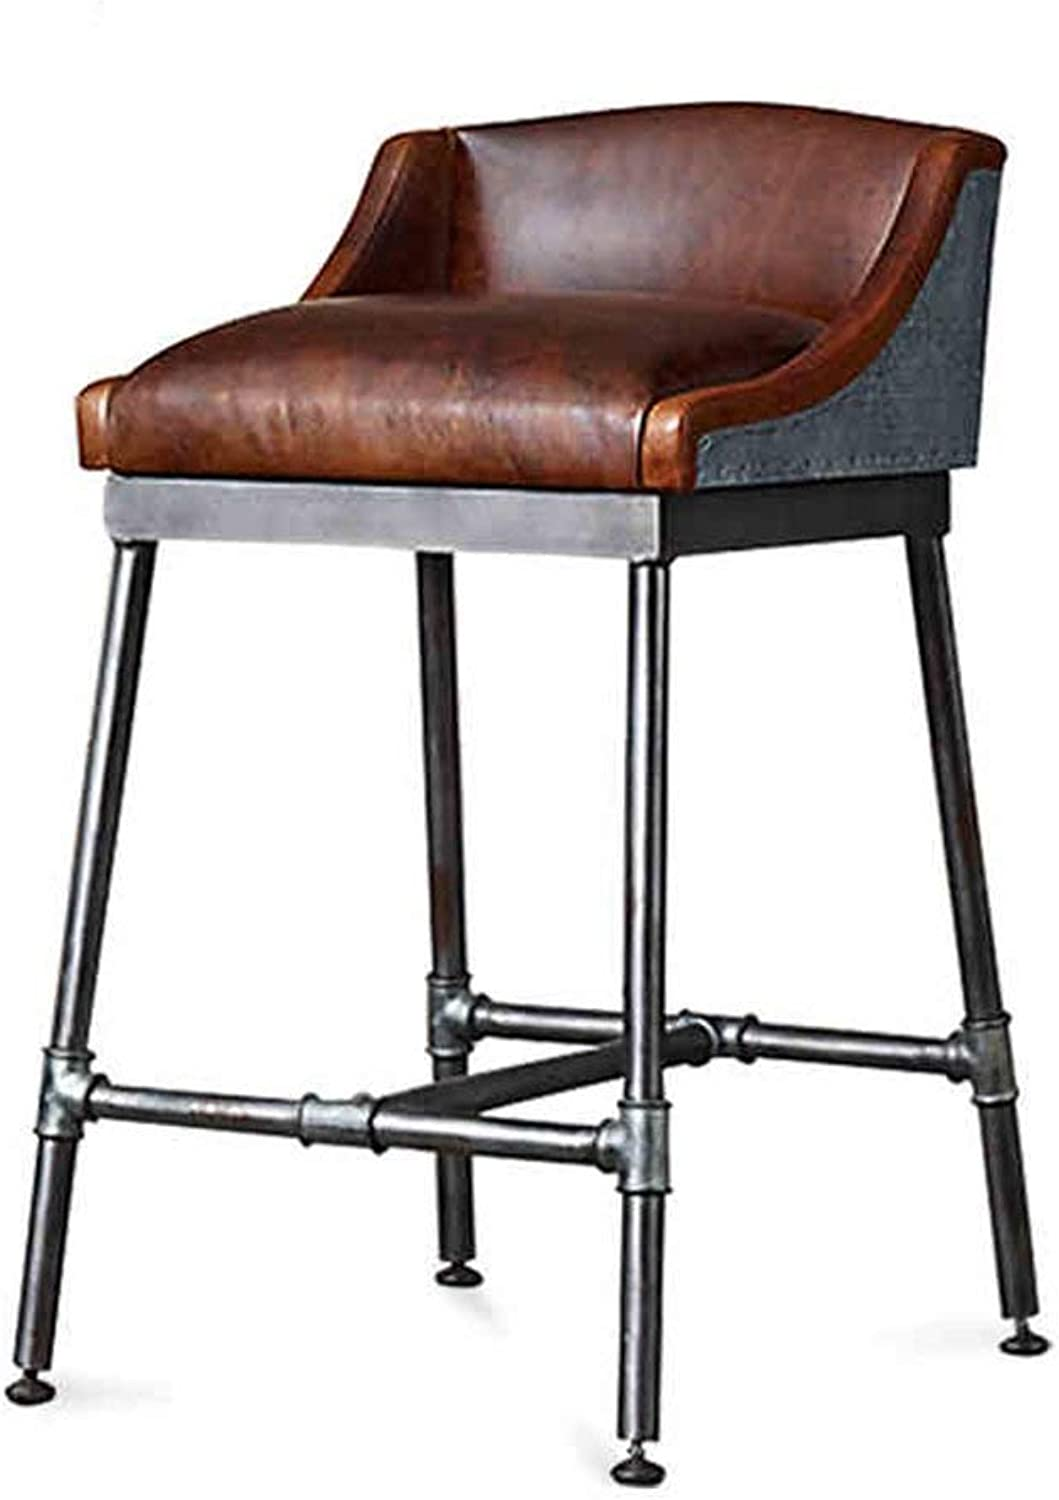 DDLD Bar Stools, Vintage Iron Art Bar Chair Industrial Style Dining Chairs Faux Leather Soft Padded Chairs with Backrest Strong and Durable for Breakfast Bar (Size   50  50  66CM)